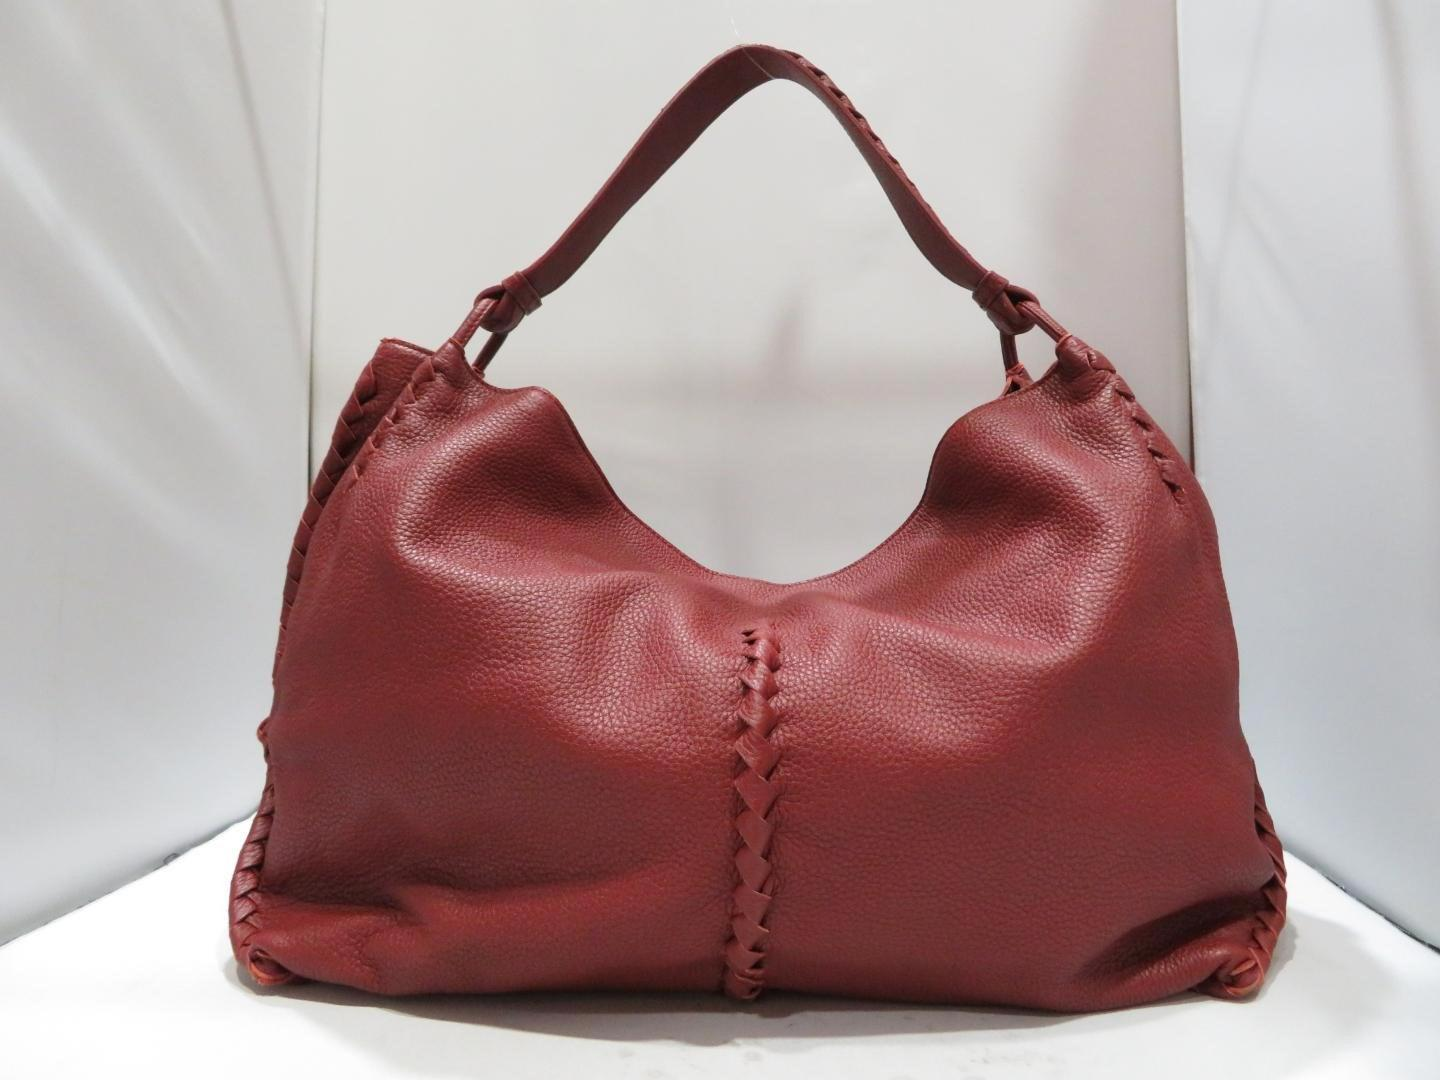 54e03a3668 Lyst - Bottega Veneta Authentic Shoulder Bag Leather Wine Red Used Vintage  in Red